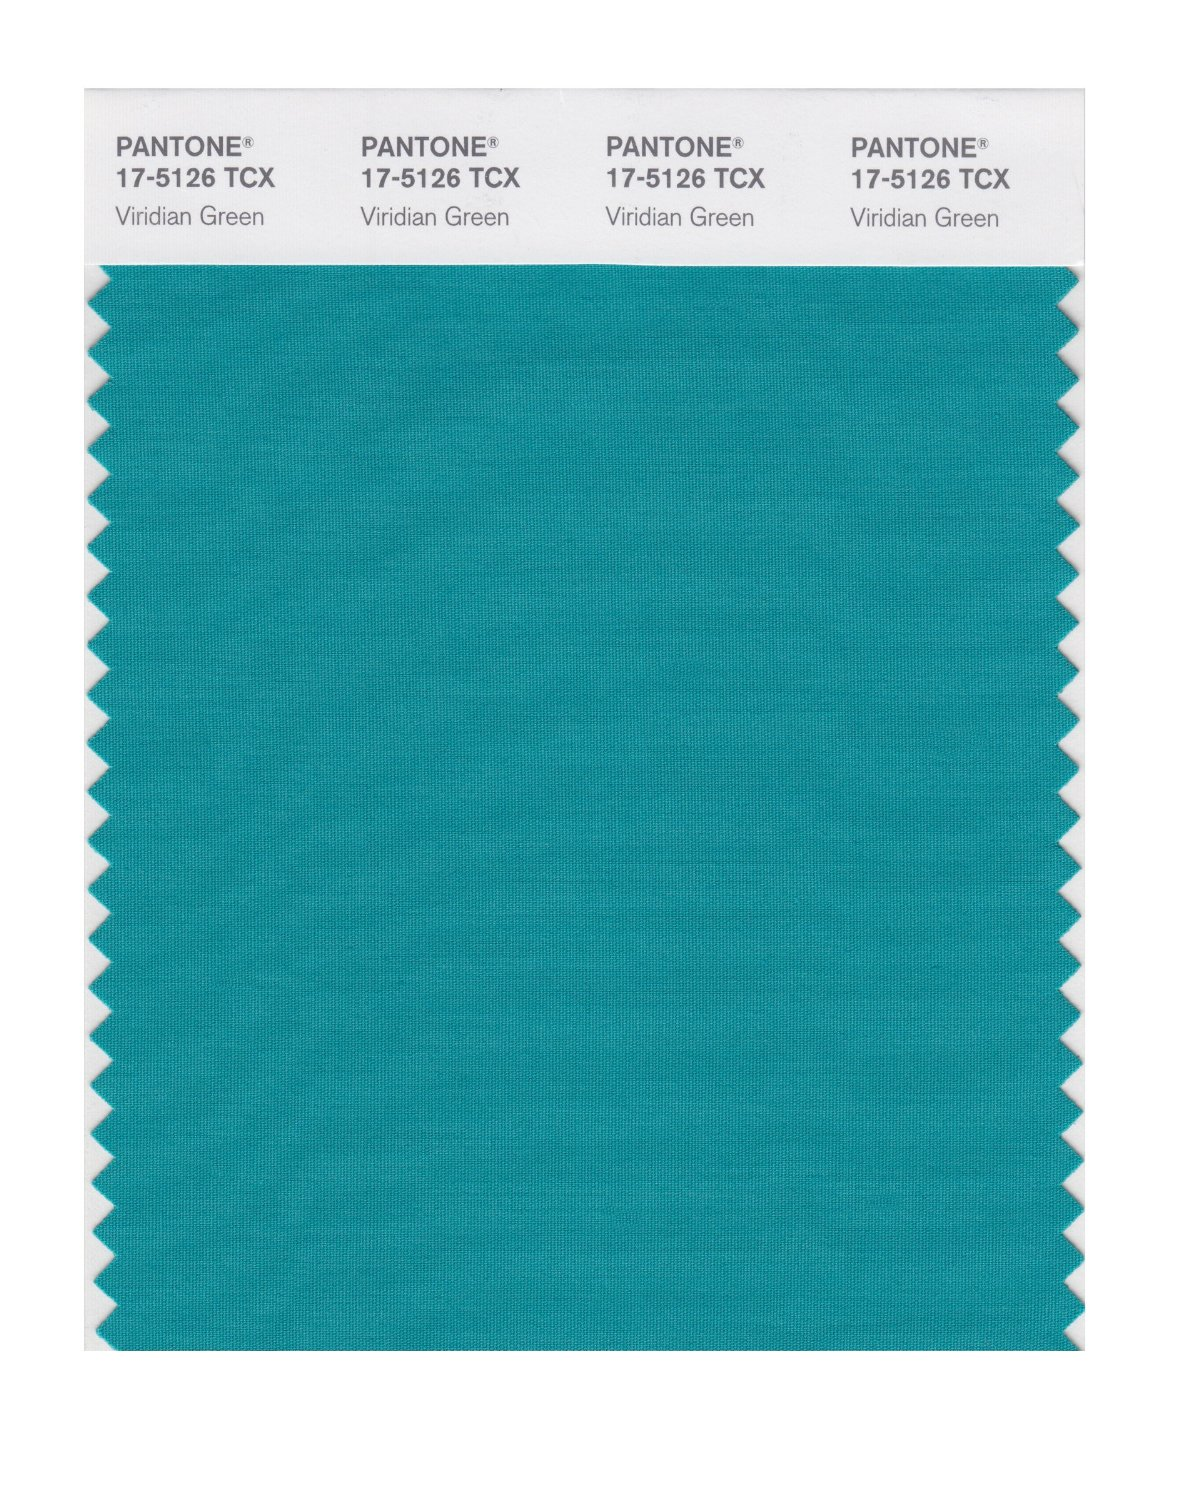 Pantone Smart Swatch 17-5126 Viridian Green